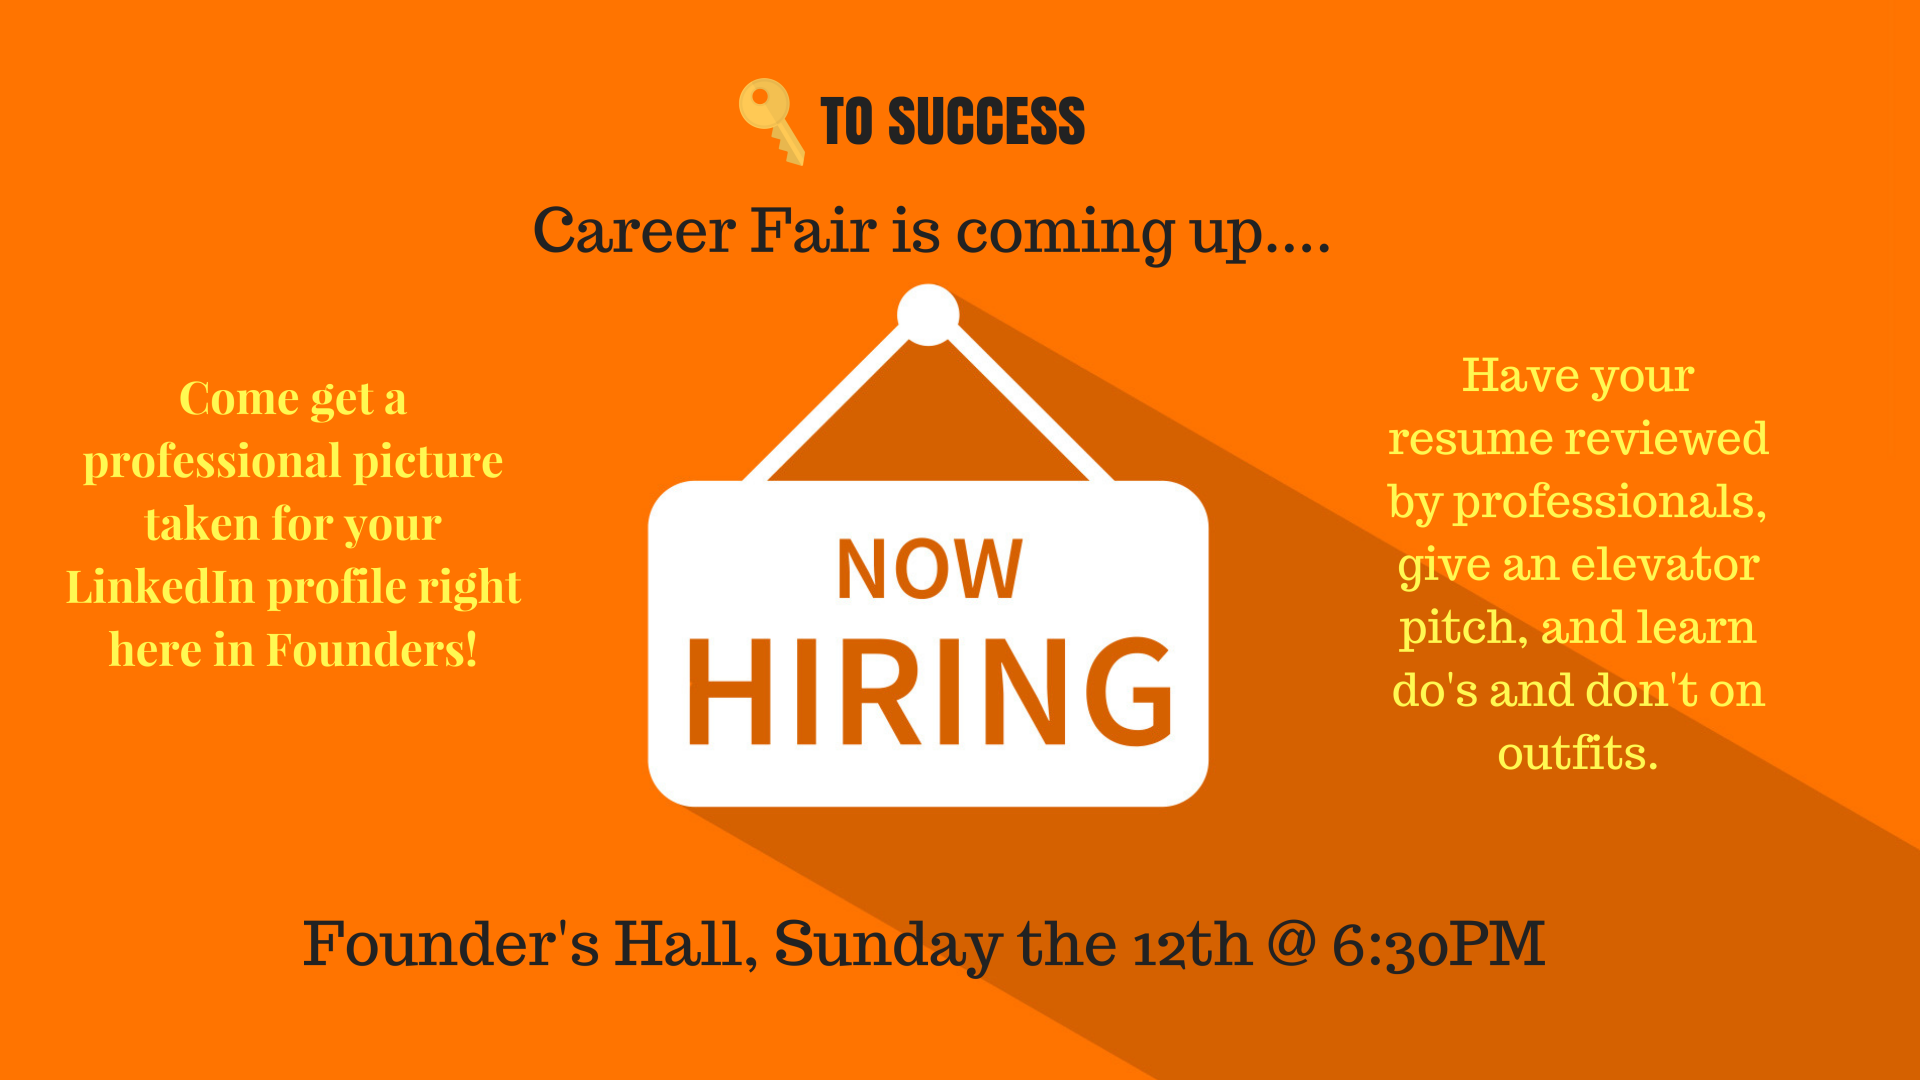 career fair prep uarkhome career fair is coming up and residents should freshen up their resume at this event residents will be able to have their resume examined and improved by